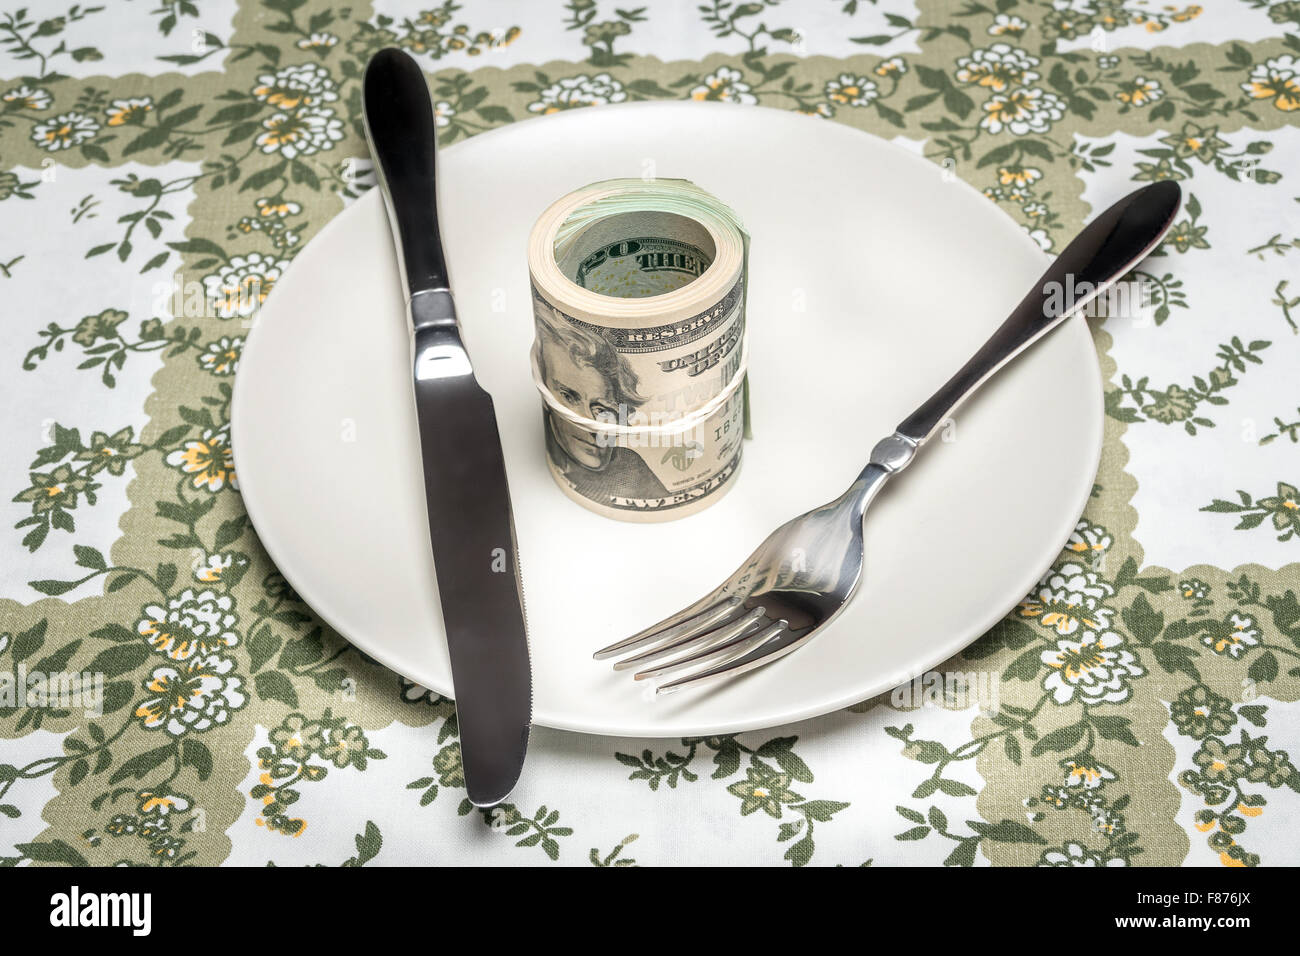 Wad of american dollars served on plate with fork and knife placed on table - business concept - Stock Image